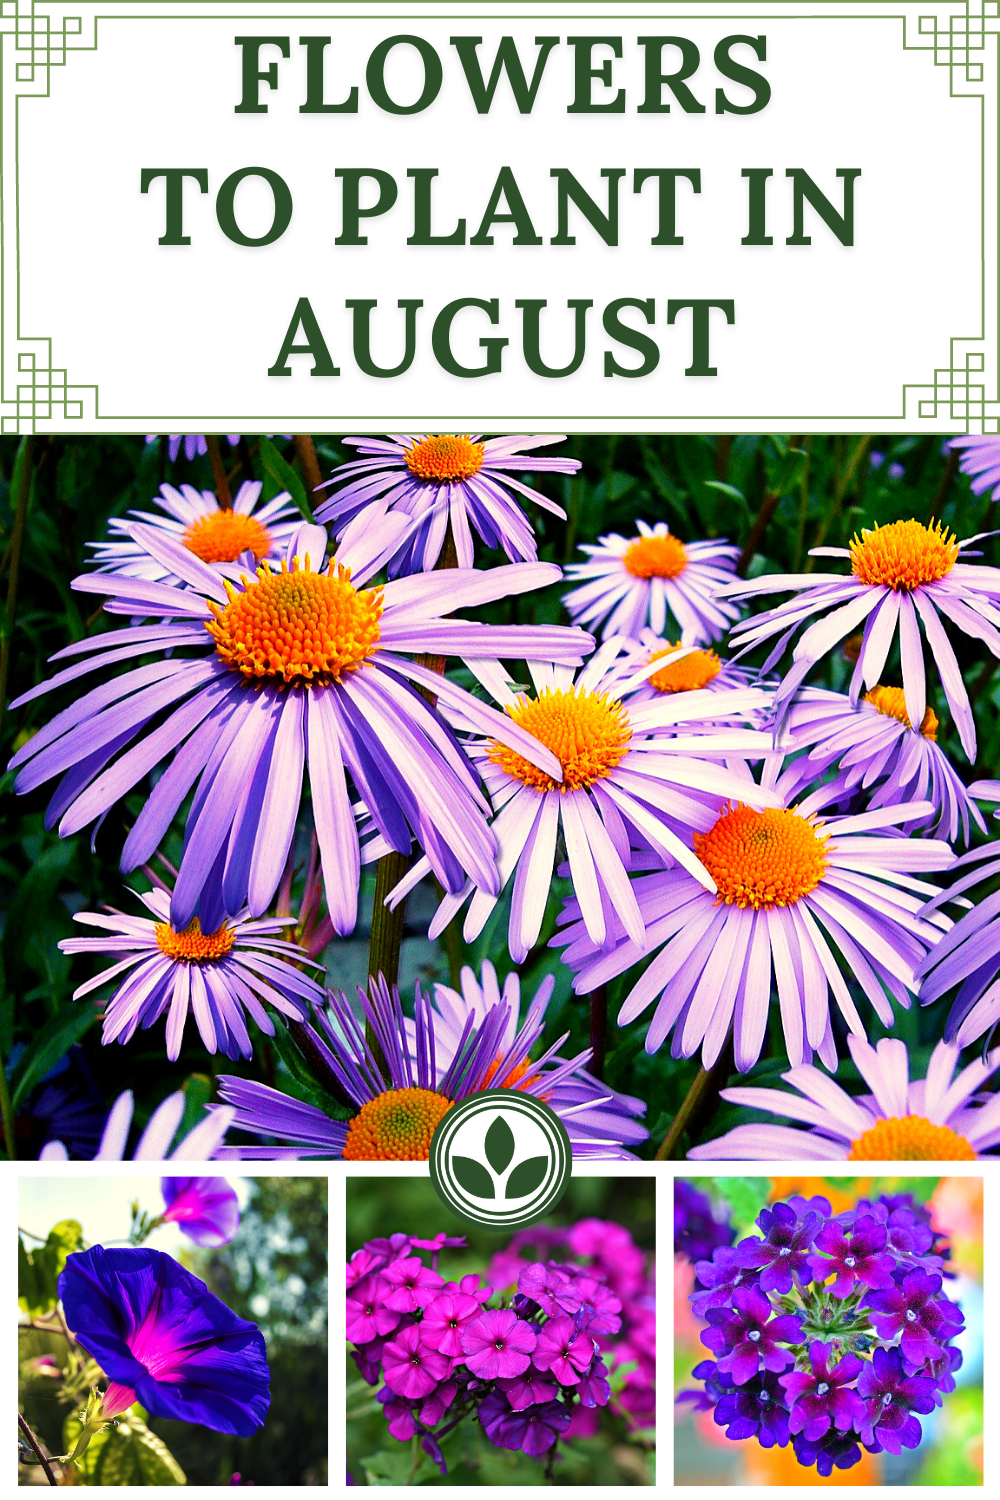 Flowers To Plant In August In 2020 Planting Flowers Plants Low Maintenance Plants